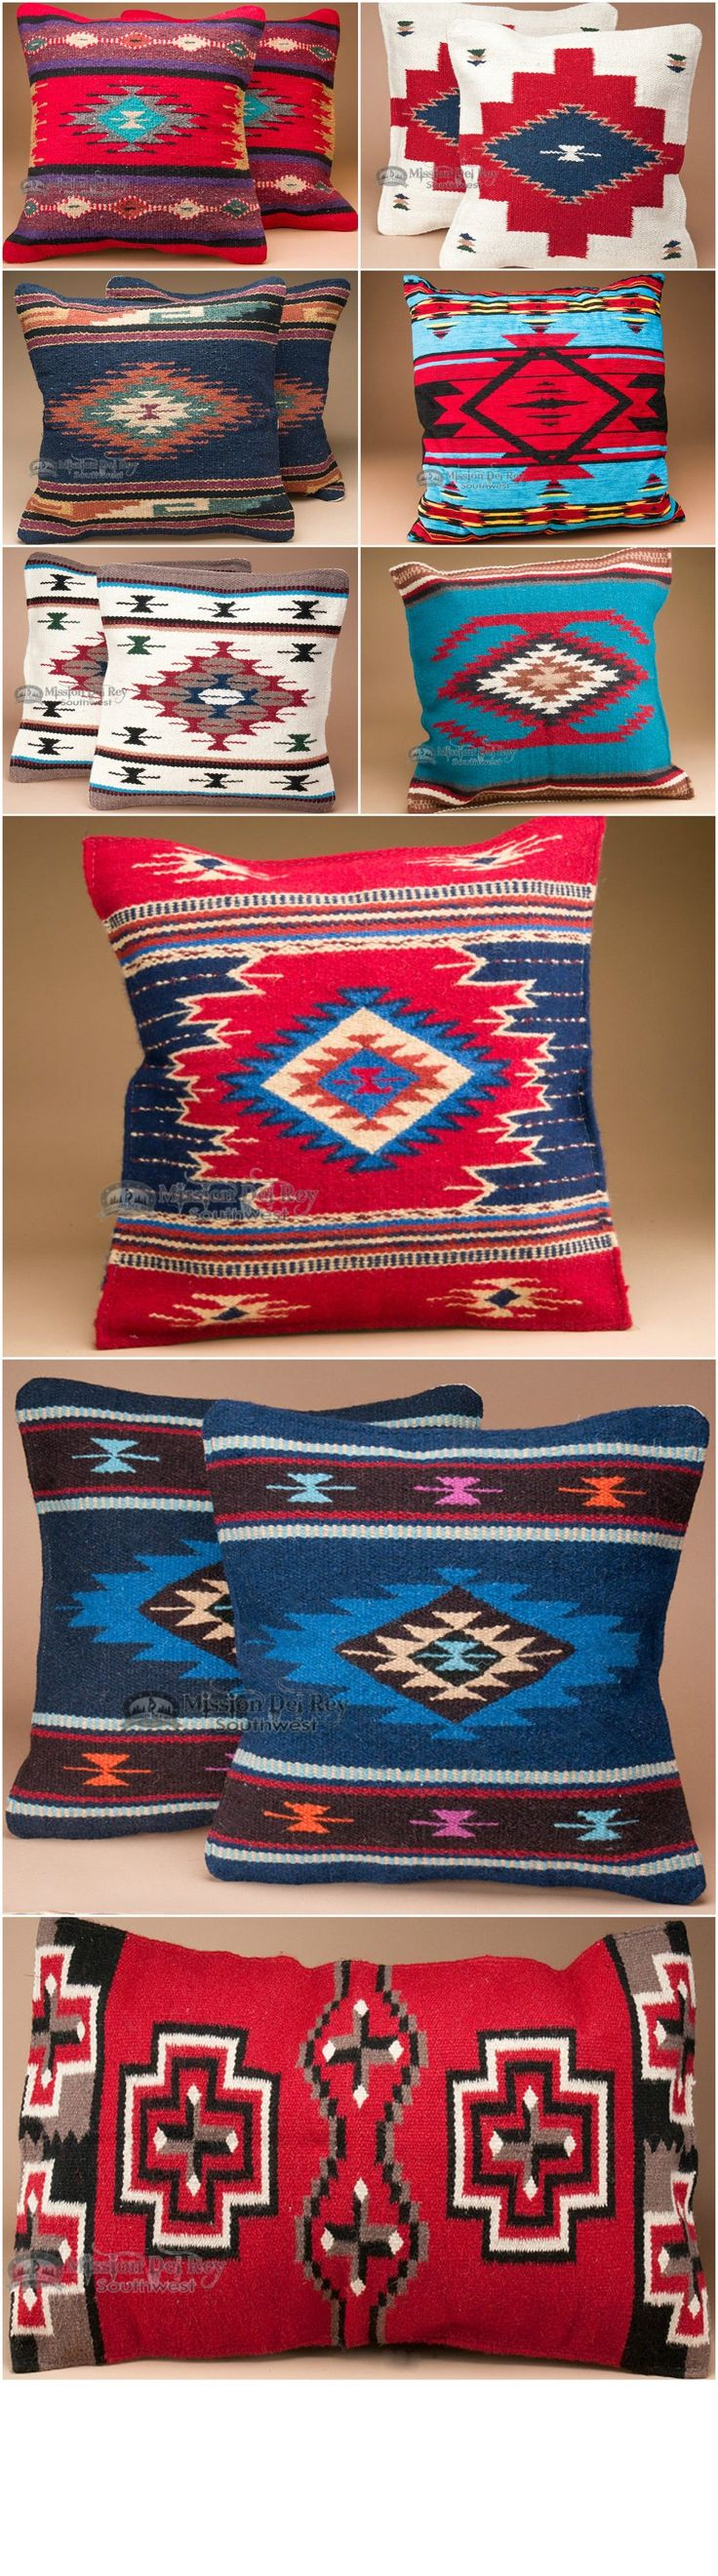 Using southwestern pillows in your home decor is the perfect way to accent a rustic living room, bedroom, or any area you want to add bright color and southwest style. Choose from a wide variety of colors and designs, and find other great southwest decor at http://www.missiondelrey.com/southwestern-pillows-pillow-covers/